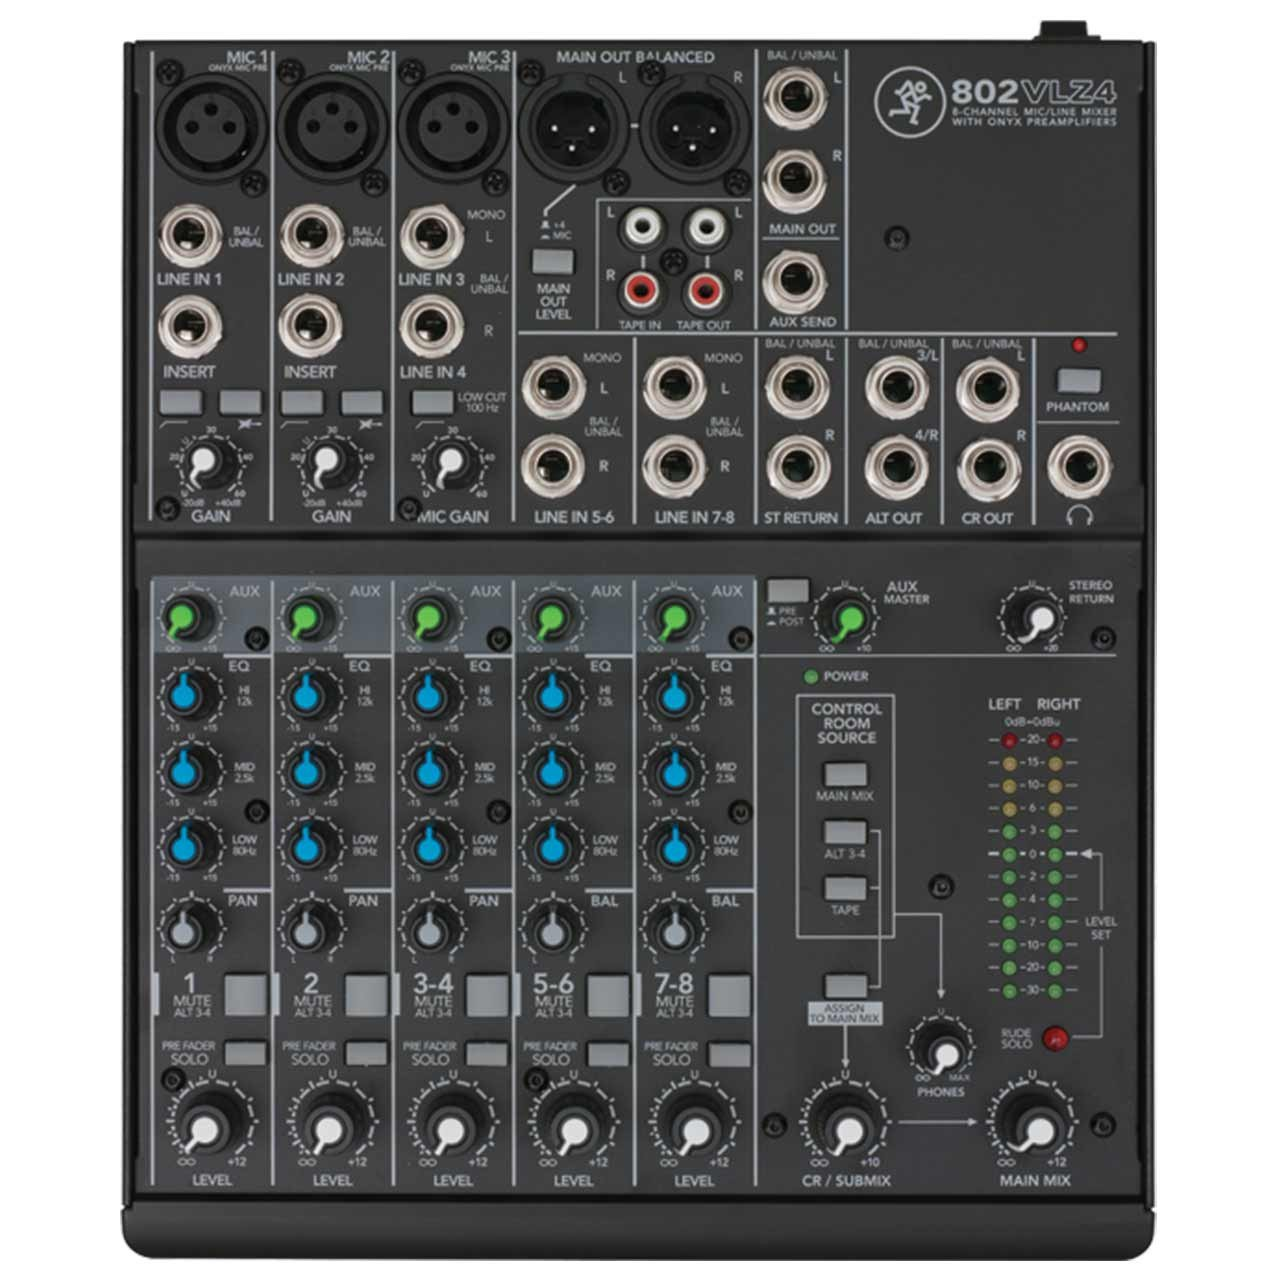 Mackie 802VLZ4 8 Channel Compact Mixer